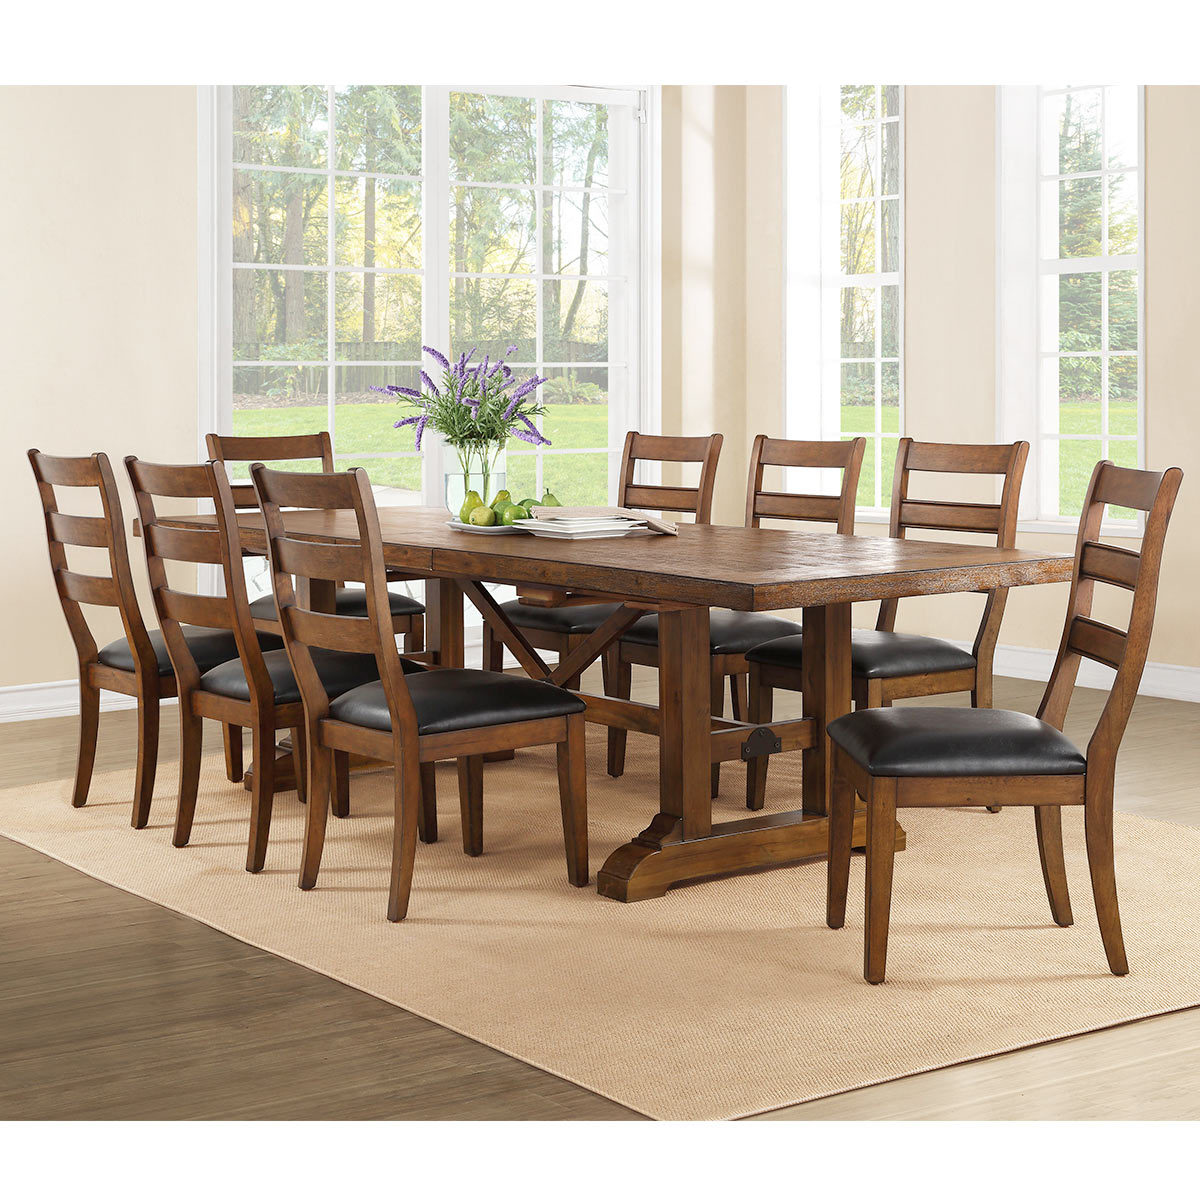 Dining Table 8 Chairs Bayside Furnishings Washington Extending Dining Room Table 8 Chairs Costco Uk